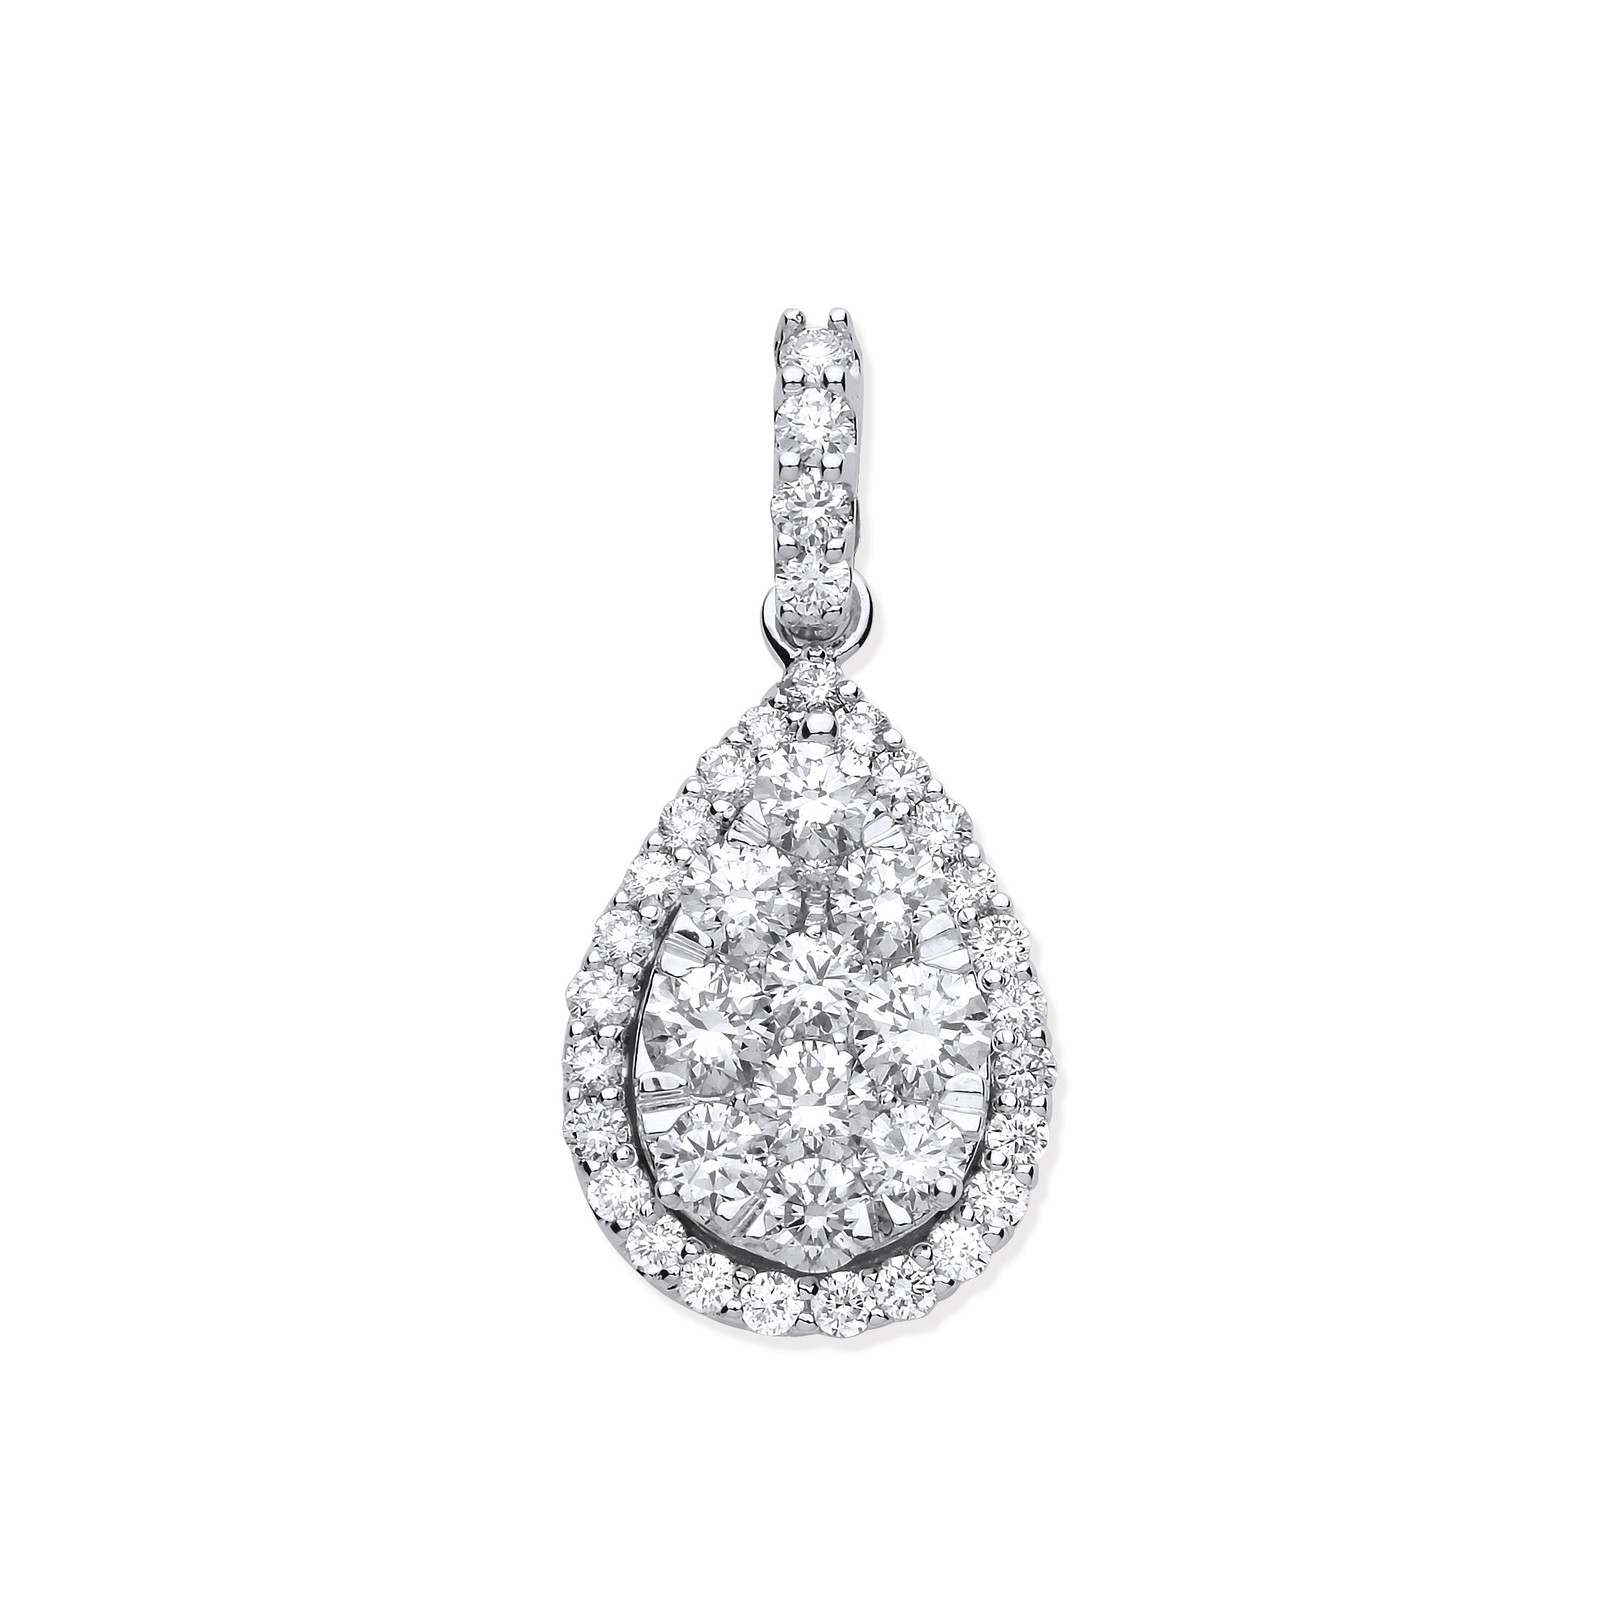 18ct White Gold 1.62ct Pear Shaped Drop Pendant